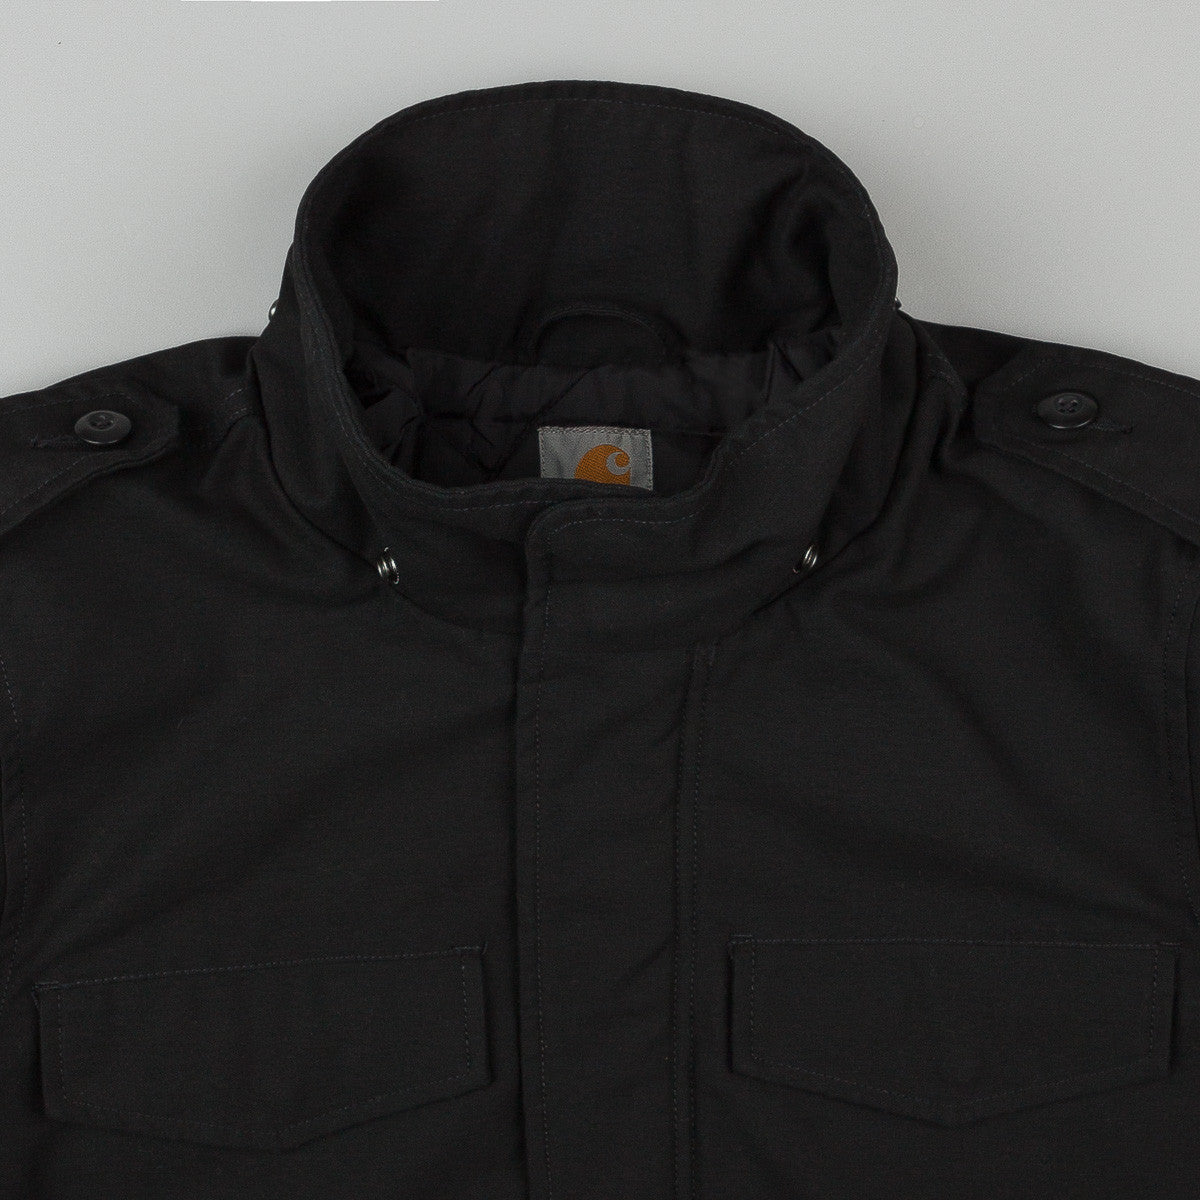 Carhartt Hickman Coat - Black